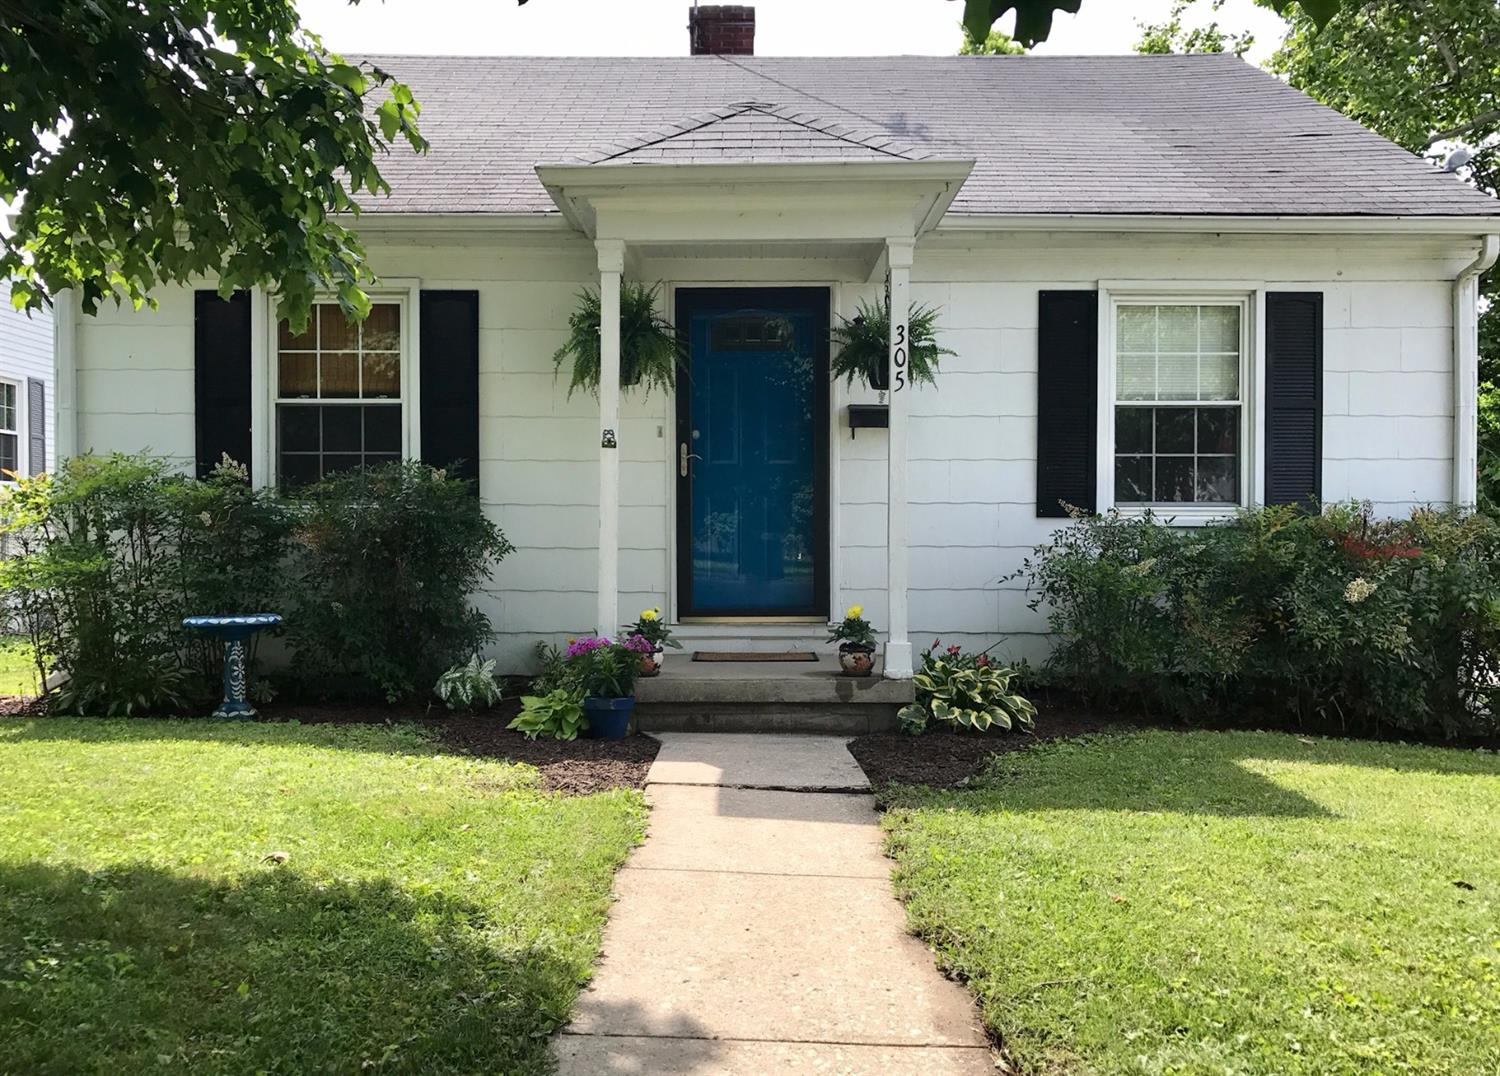 Home For Sale at 501-503 Lake St, Nicholasville, KY 40356